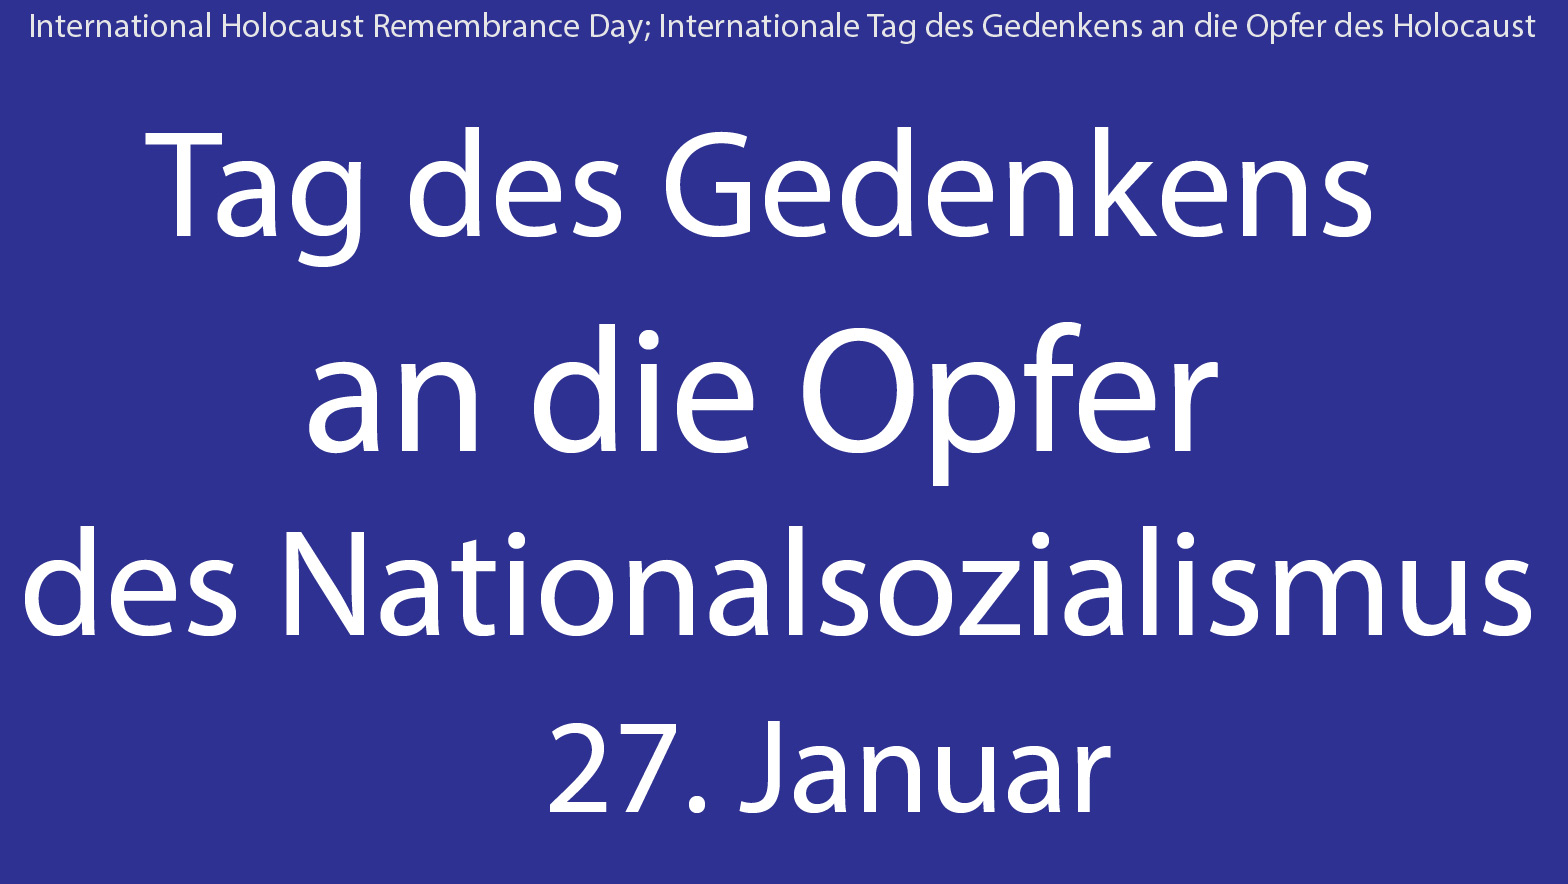 Holocaust Gedenktag, Tag des Gedenkens an die Opfer des Nationalsozialismus, 27. Januar, Internationale Tag des Gedenkens an die Opfer des Holocaust, International Holocaust Remembrance Day, 27 January